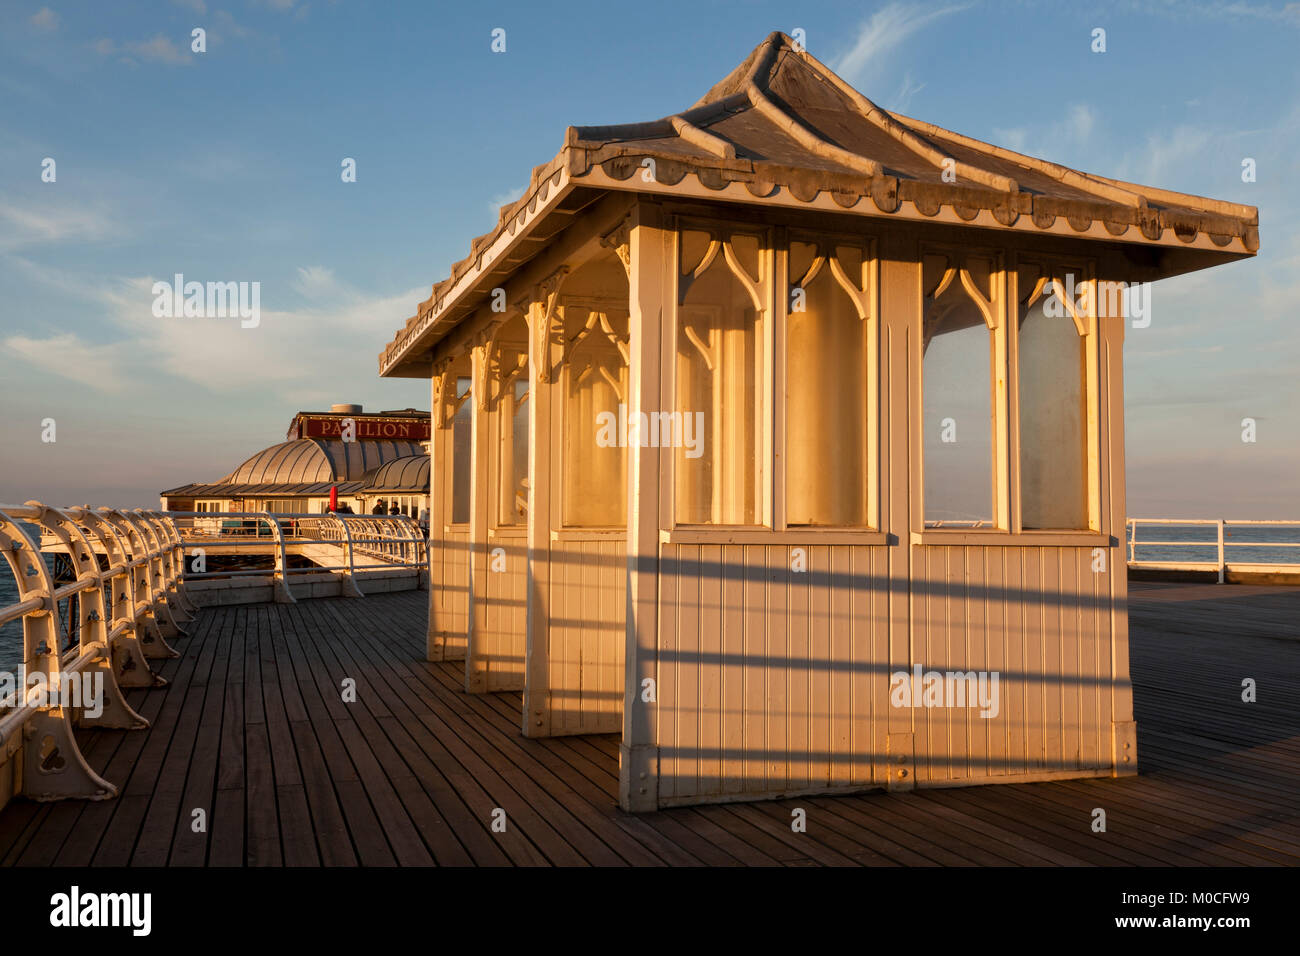 Sheltered seats on Cromer Pier, Norfolk, UK - Stock Image